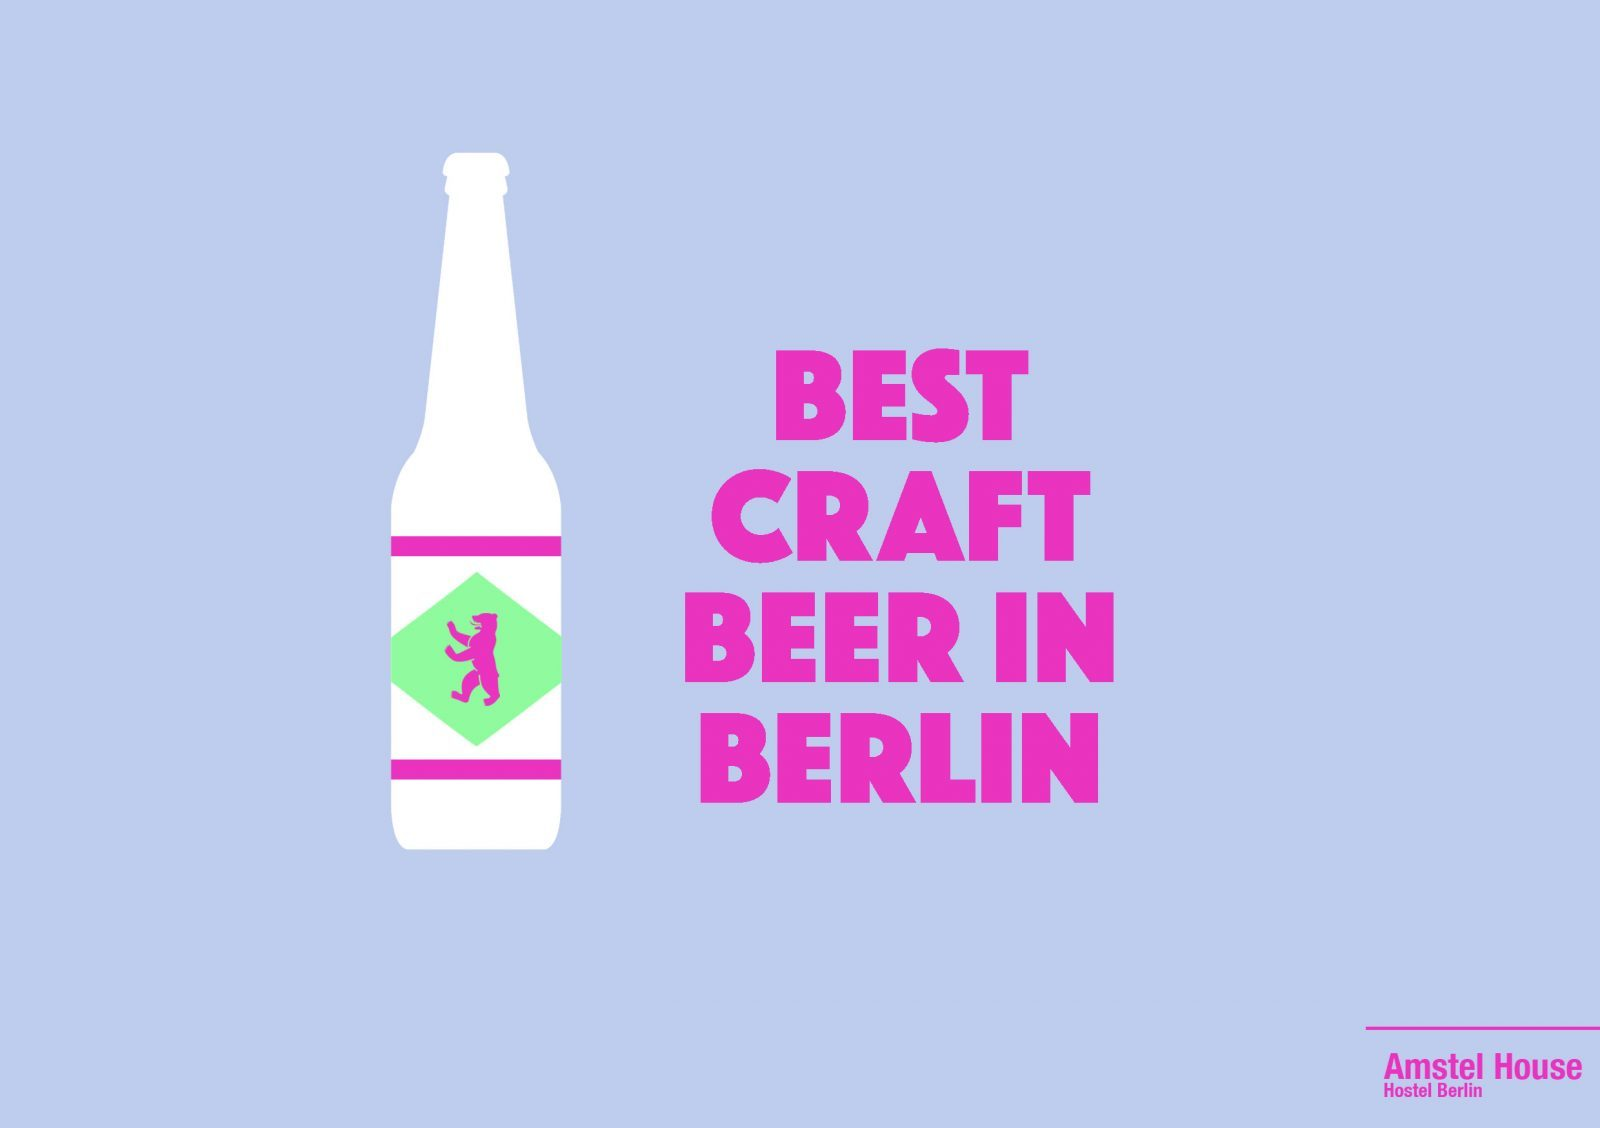 Best craft beer bars in Berlin by craft beer breweries